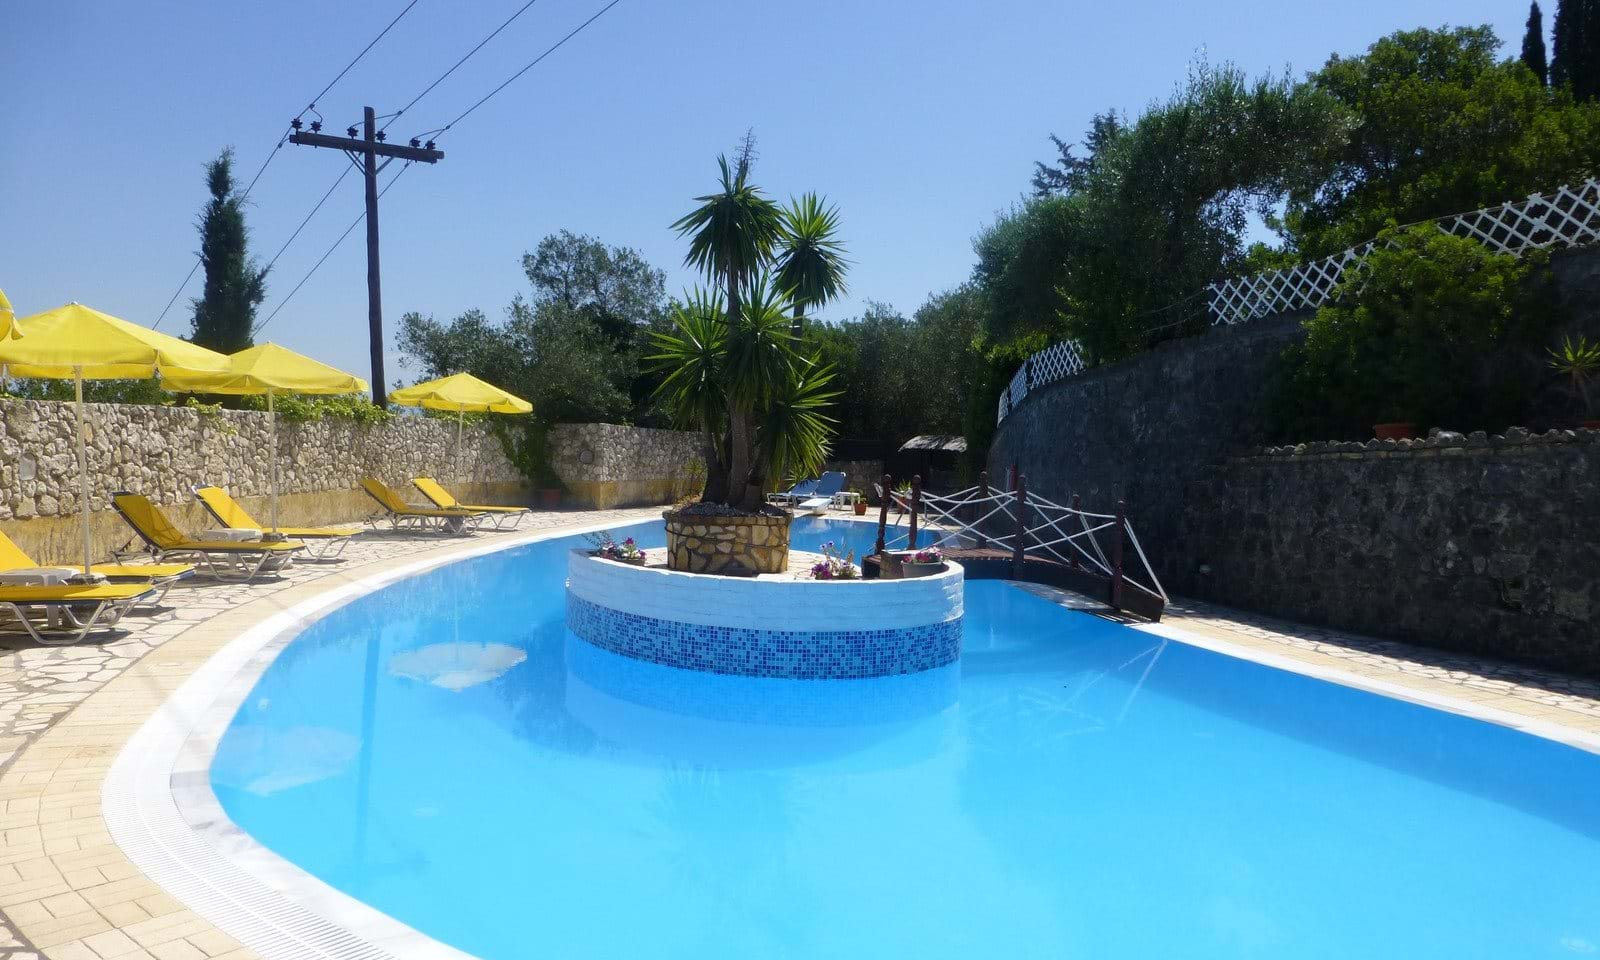 Villas and houses with pools in Corfu